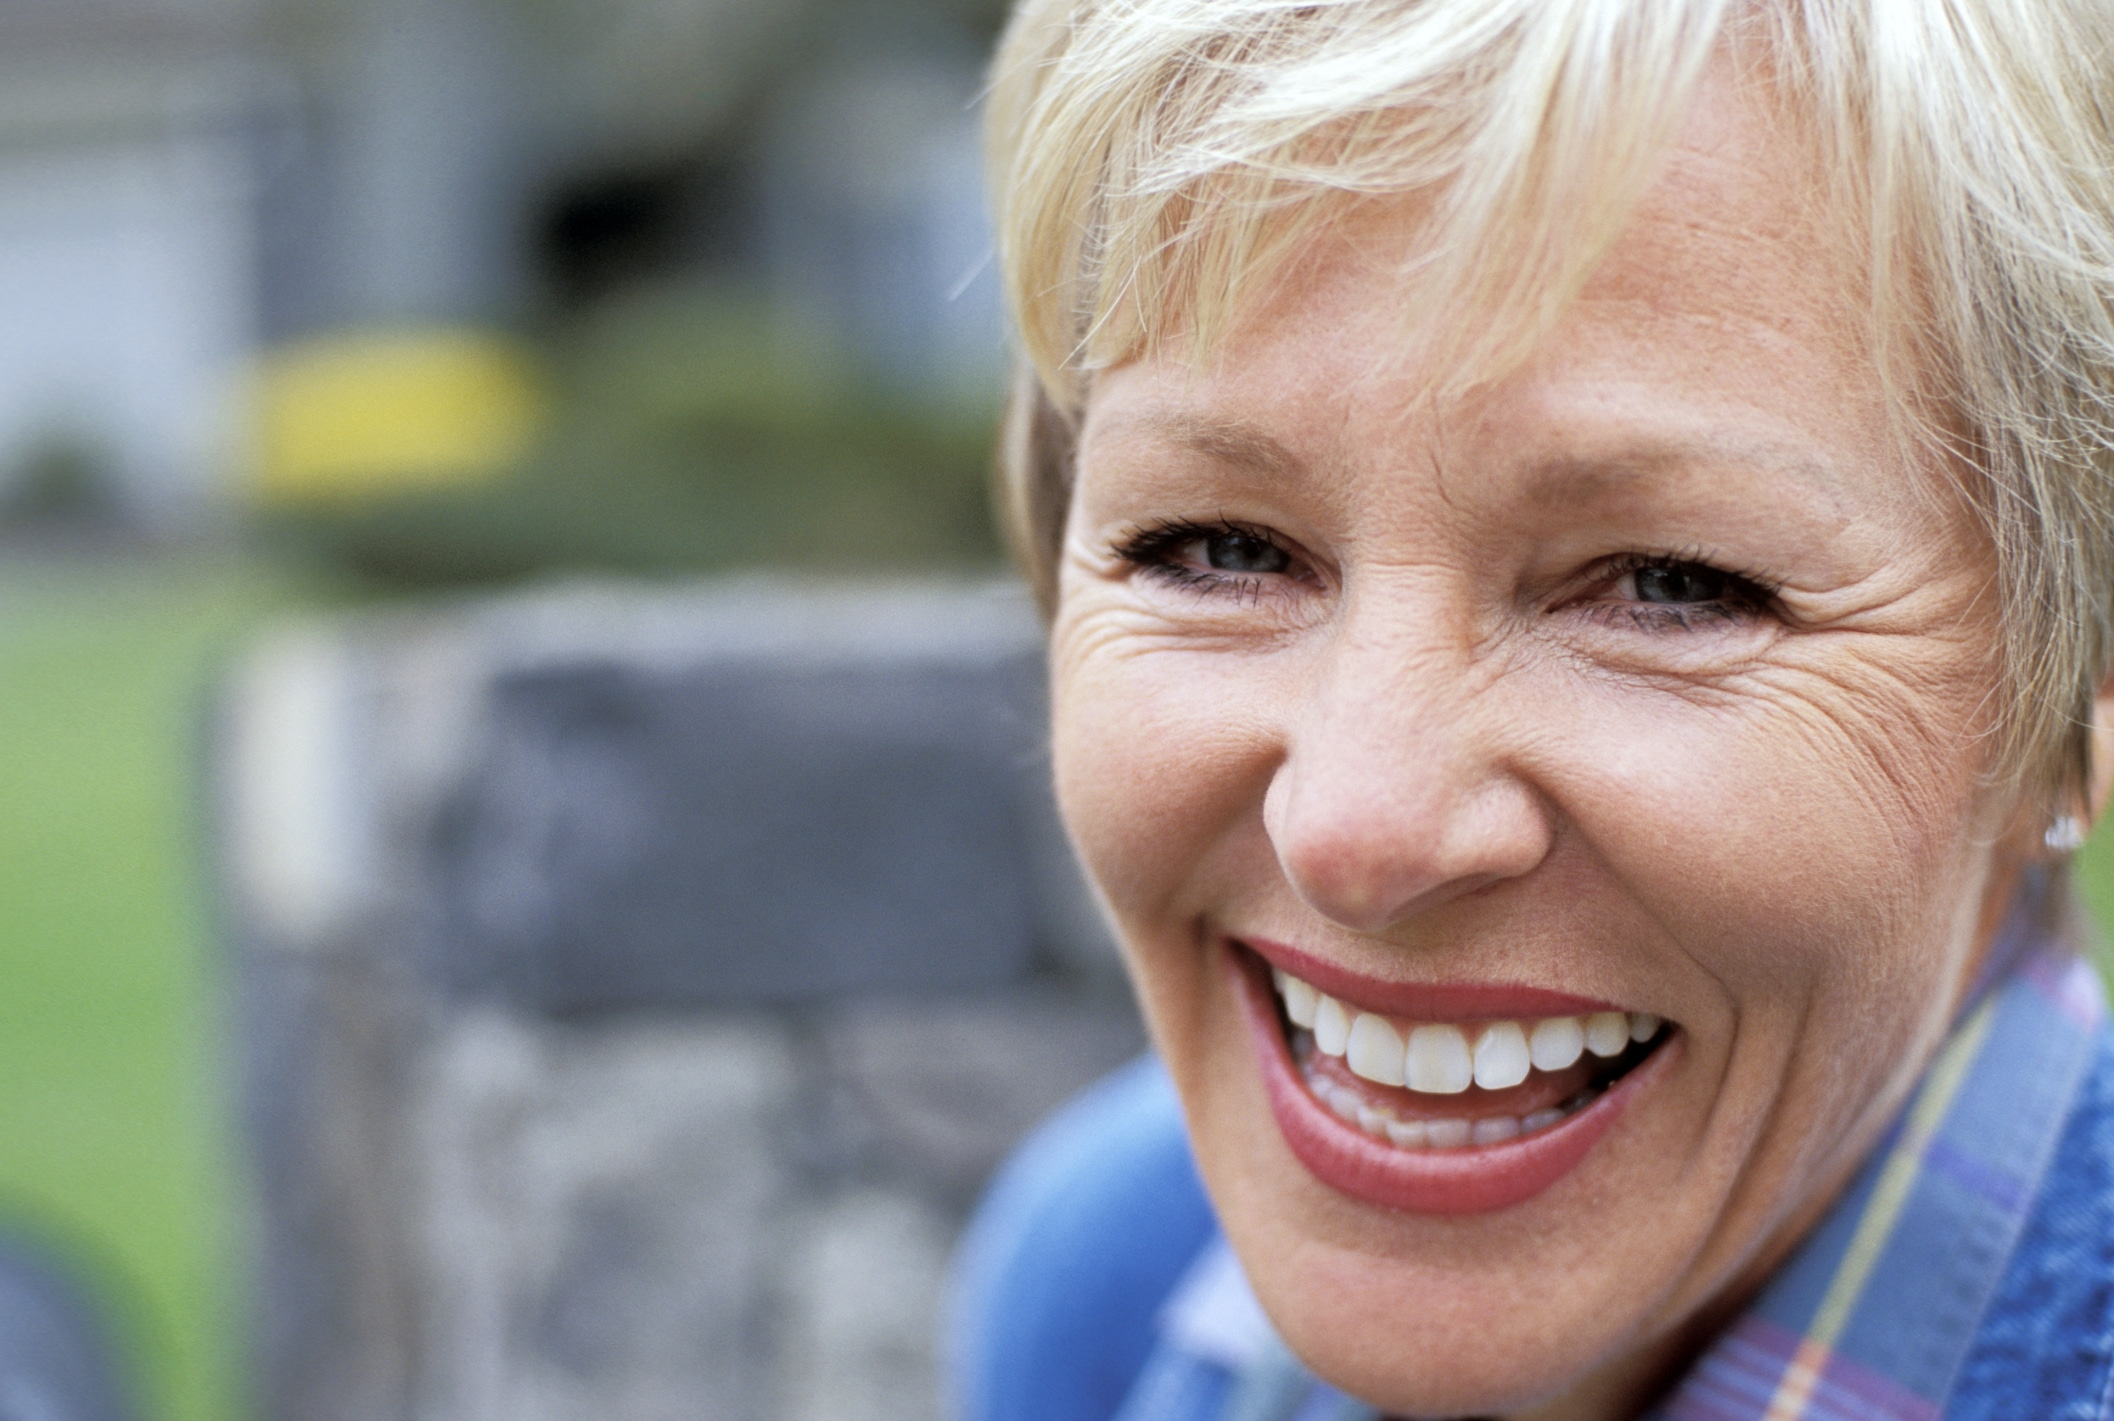 Your Smile Can Last a Lifetime With Restorative Dentistry